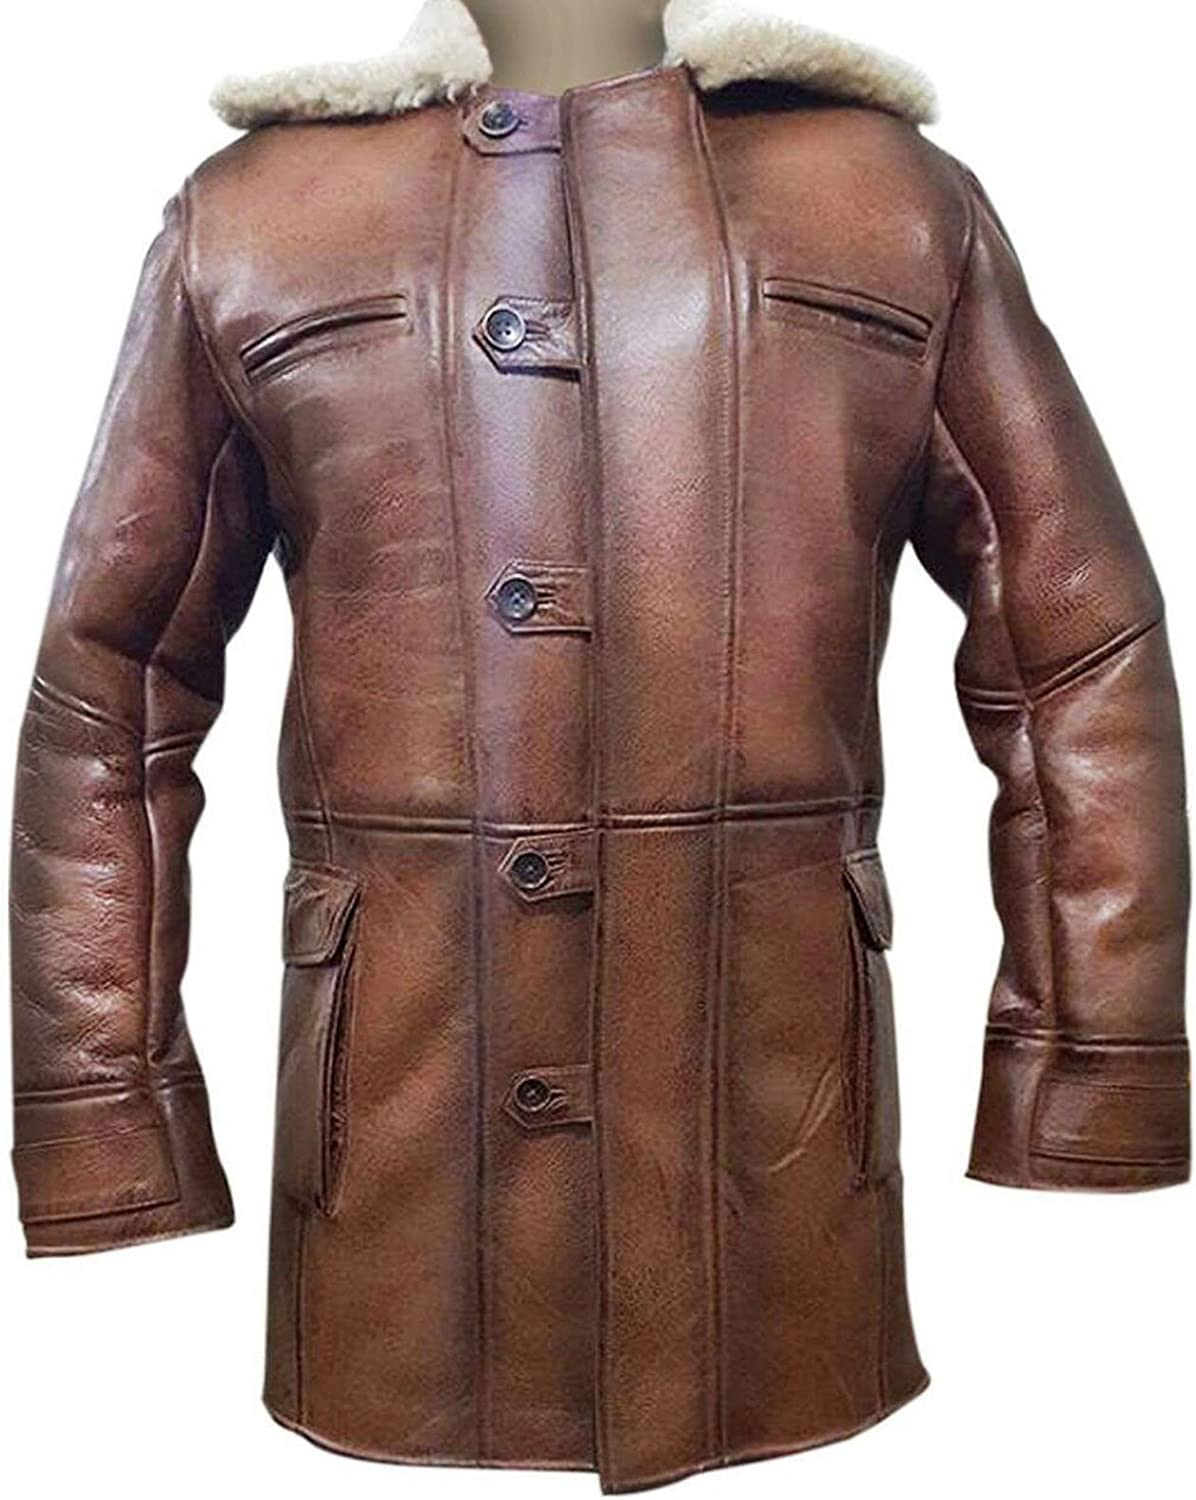 CHICAGO-FASHIONS Bane Rises Fur Shearling Hardy Winter Real Leather Distressed Brown Trench Coat